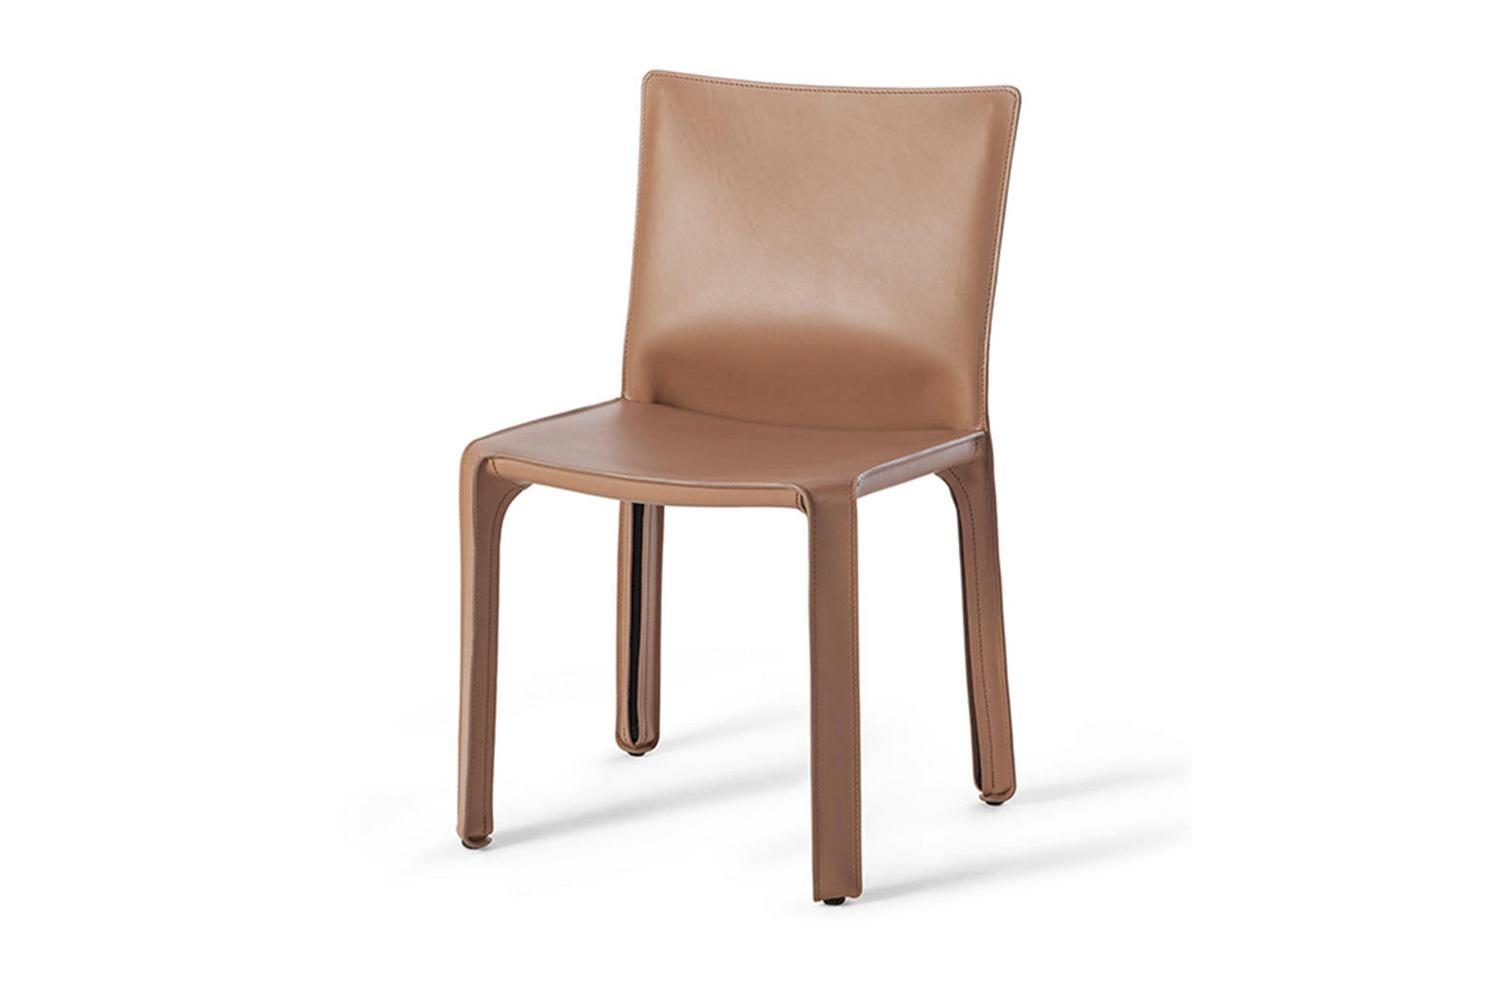 412 Cab Chair By Mario Bellini For Cassina Space Furniture